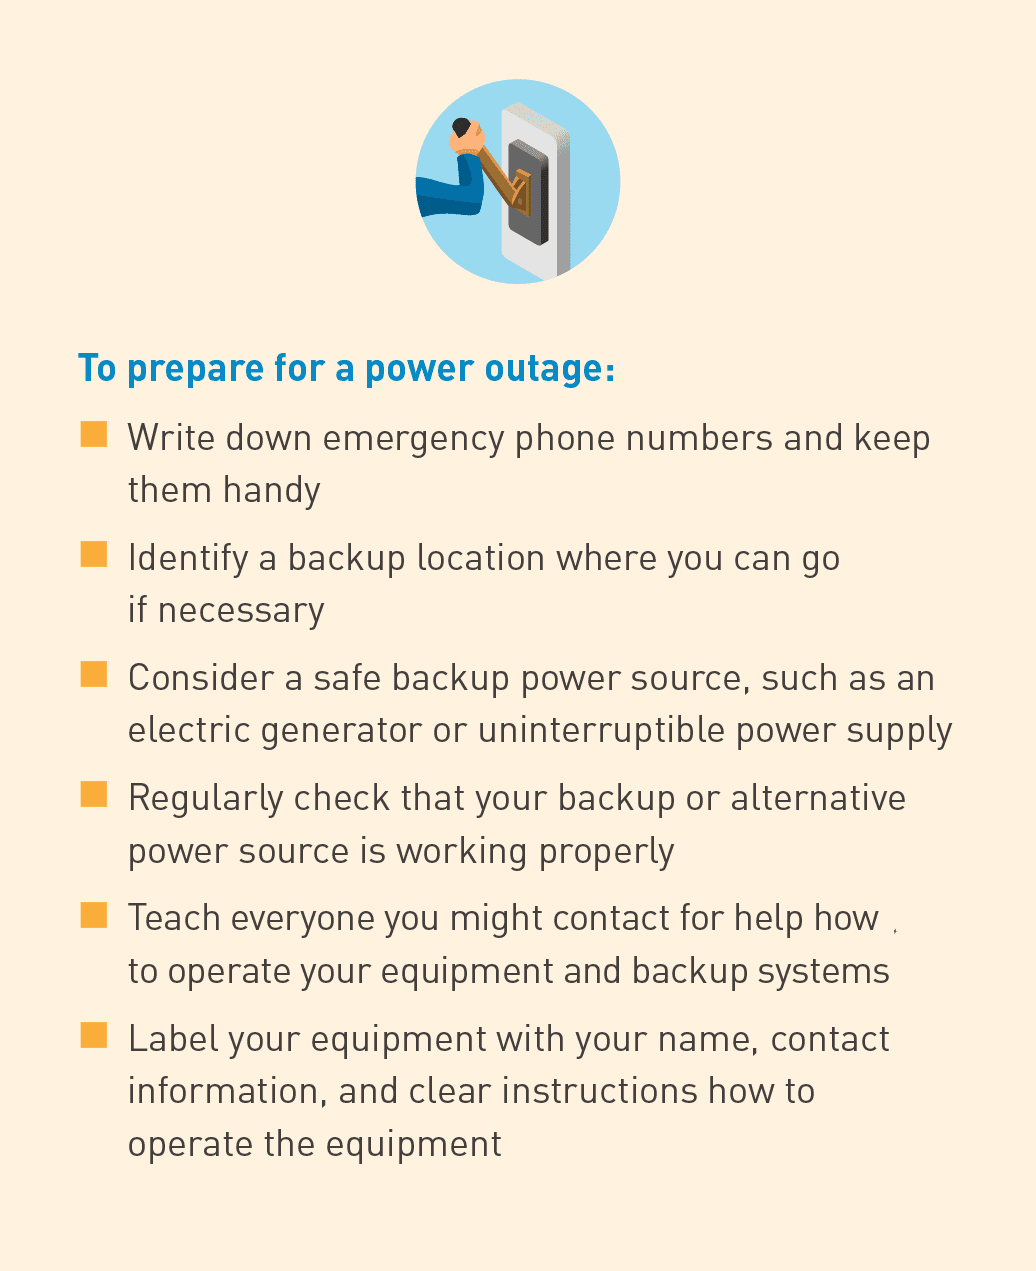 Bulleted list of tips to prepare for a power outage